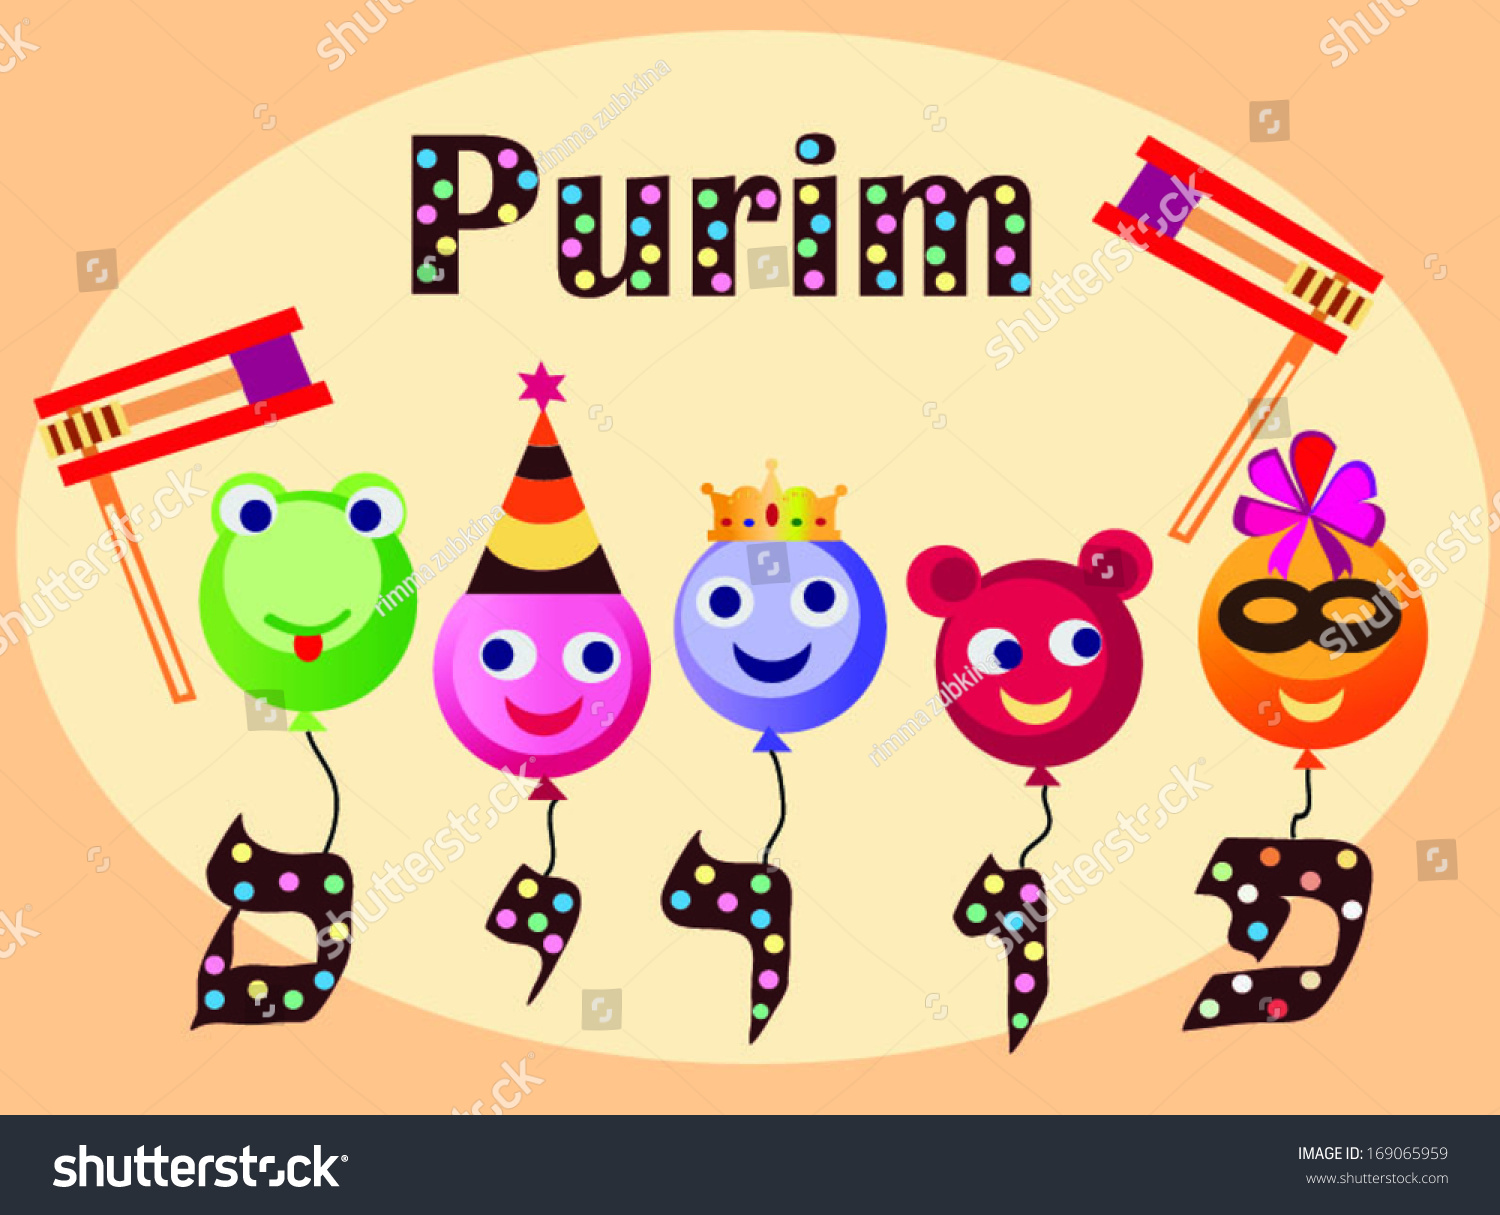 Funny balloon faces - Happy Purim Purim Carnival Balloons Funny Faces